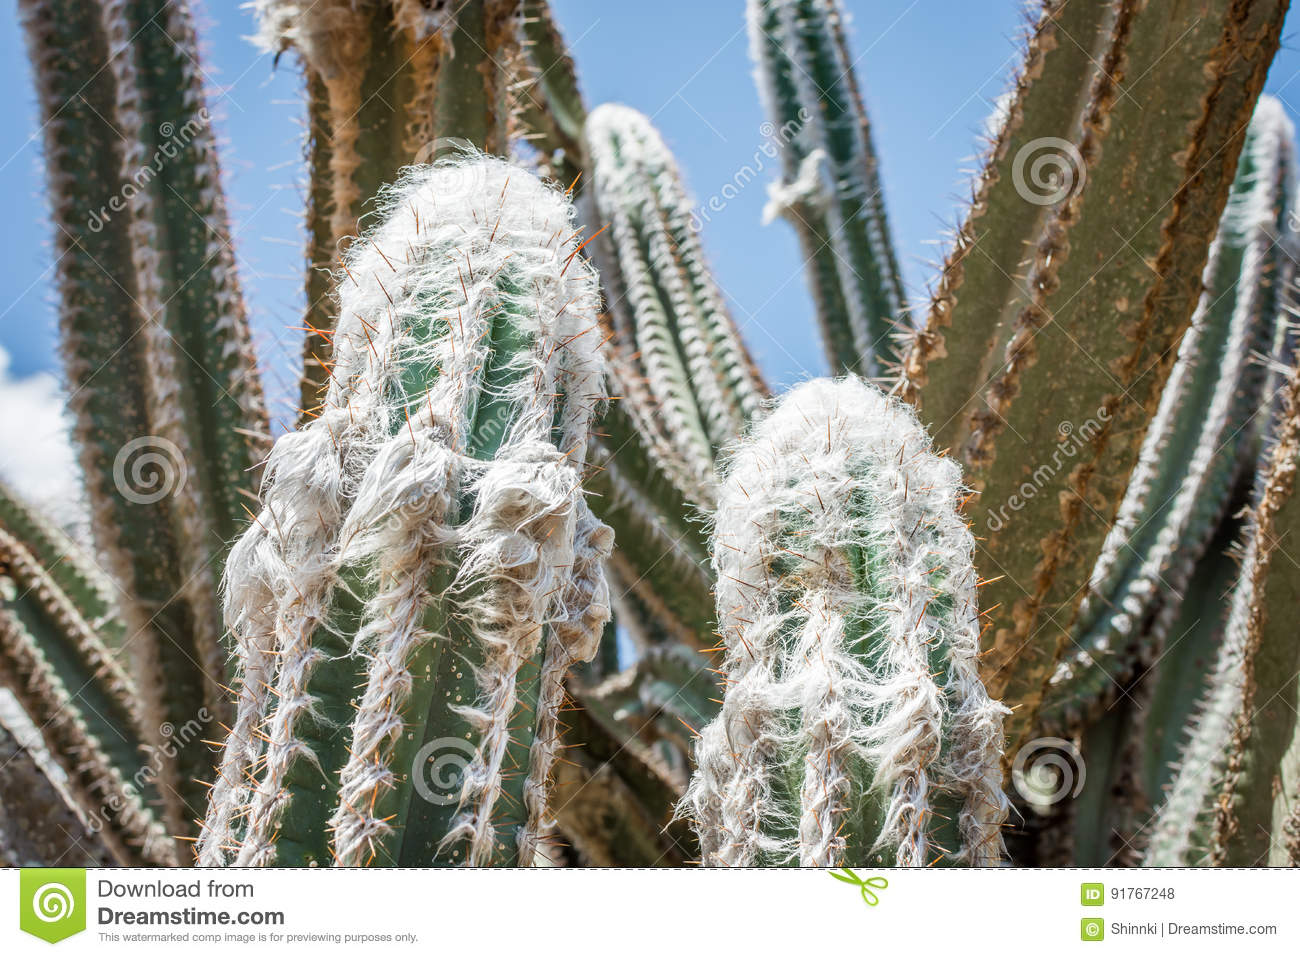 Woolly Torch Cactus